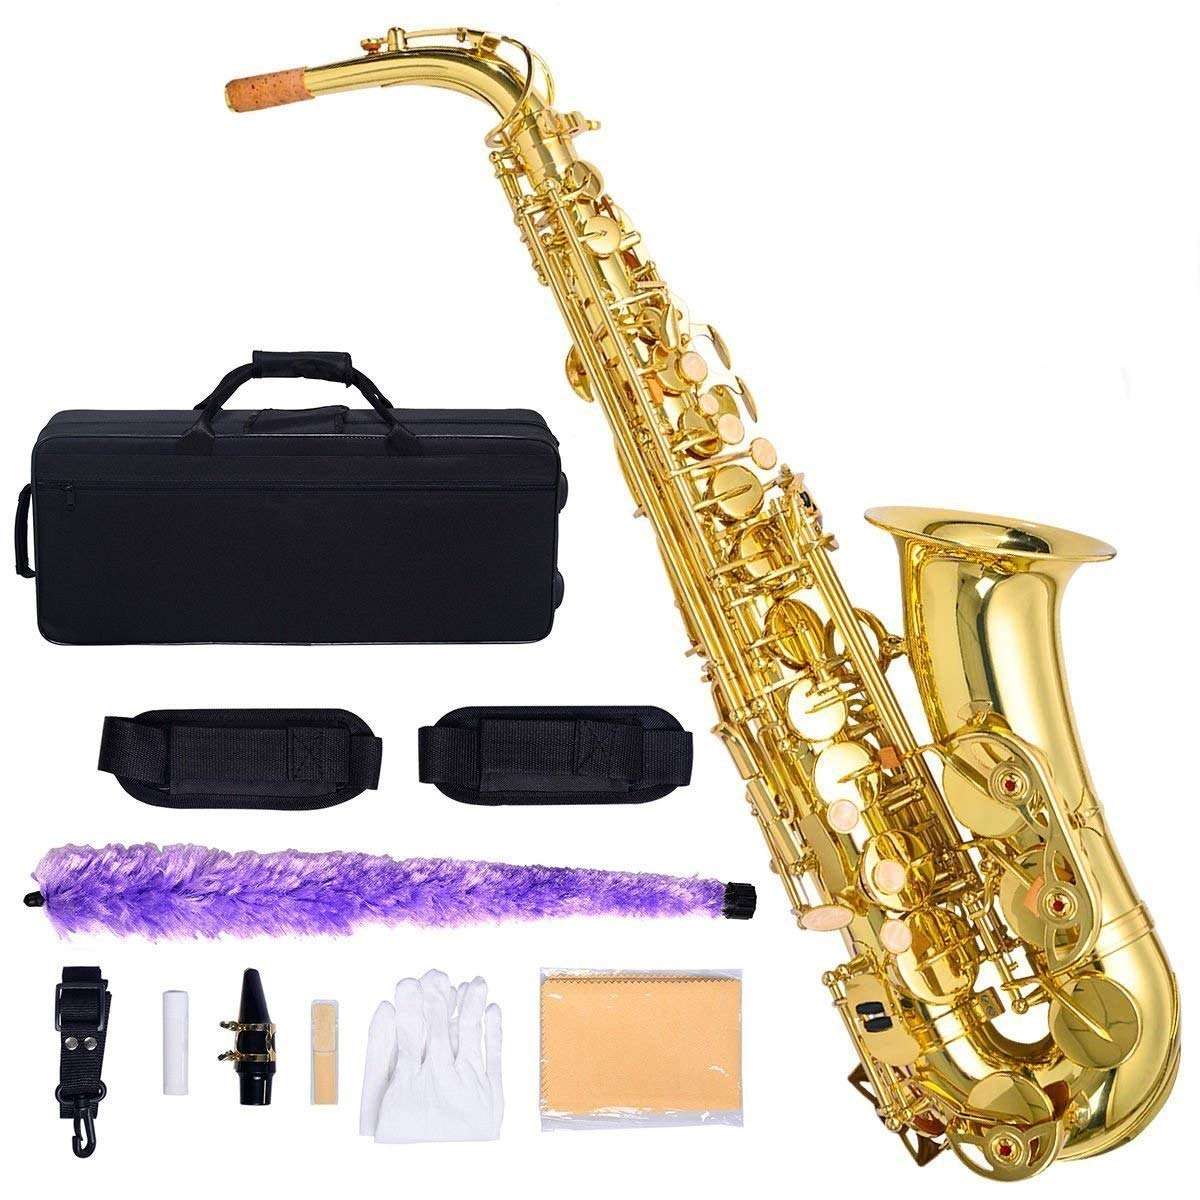 Costzon Alto Saxophone, E-Flat Gold Lacquer Finish, High F Key, Full Set Accessories with Carry Case, Neck Straps, Mouthpiece, Cork Grease, Reed, Cleaning Cloth Rod, Gloves for Beginner Student by Costzon